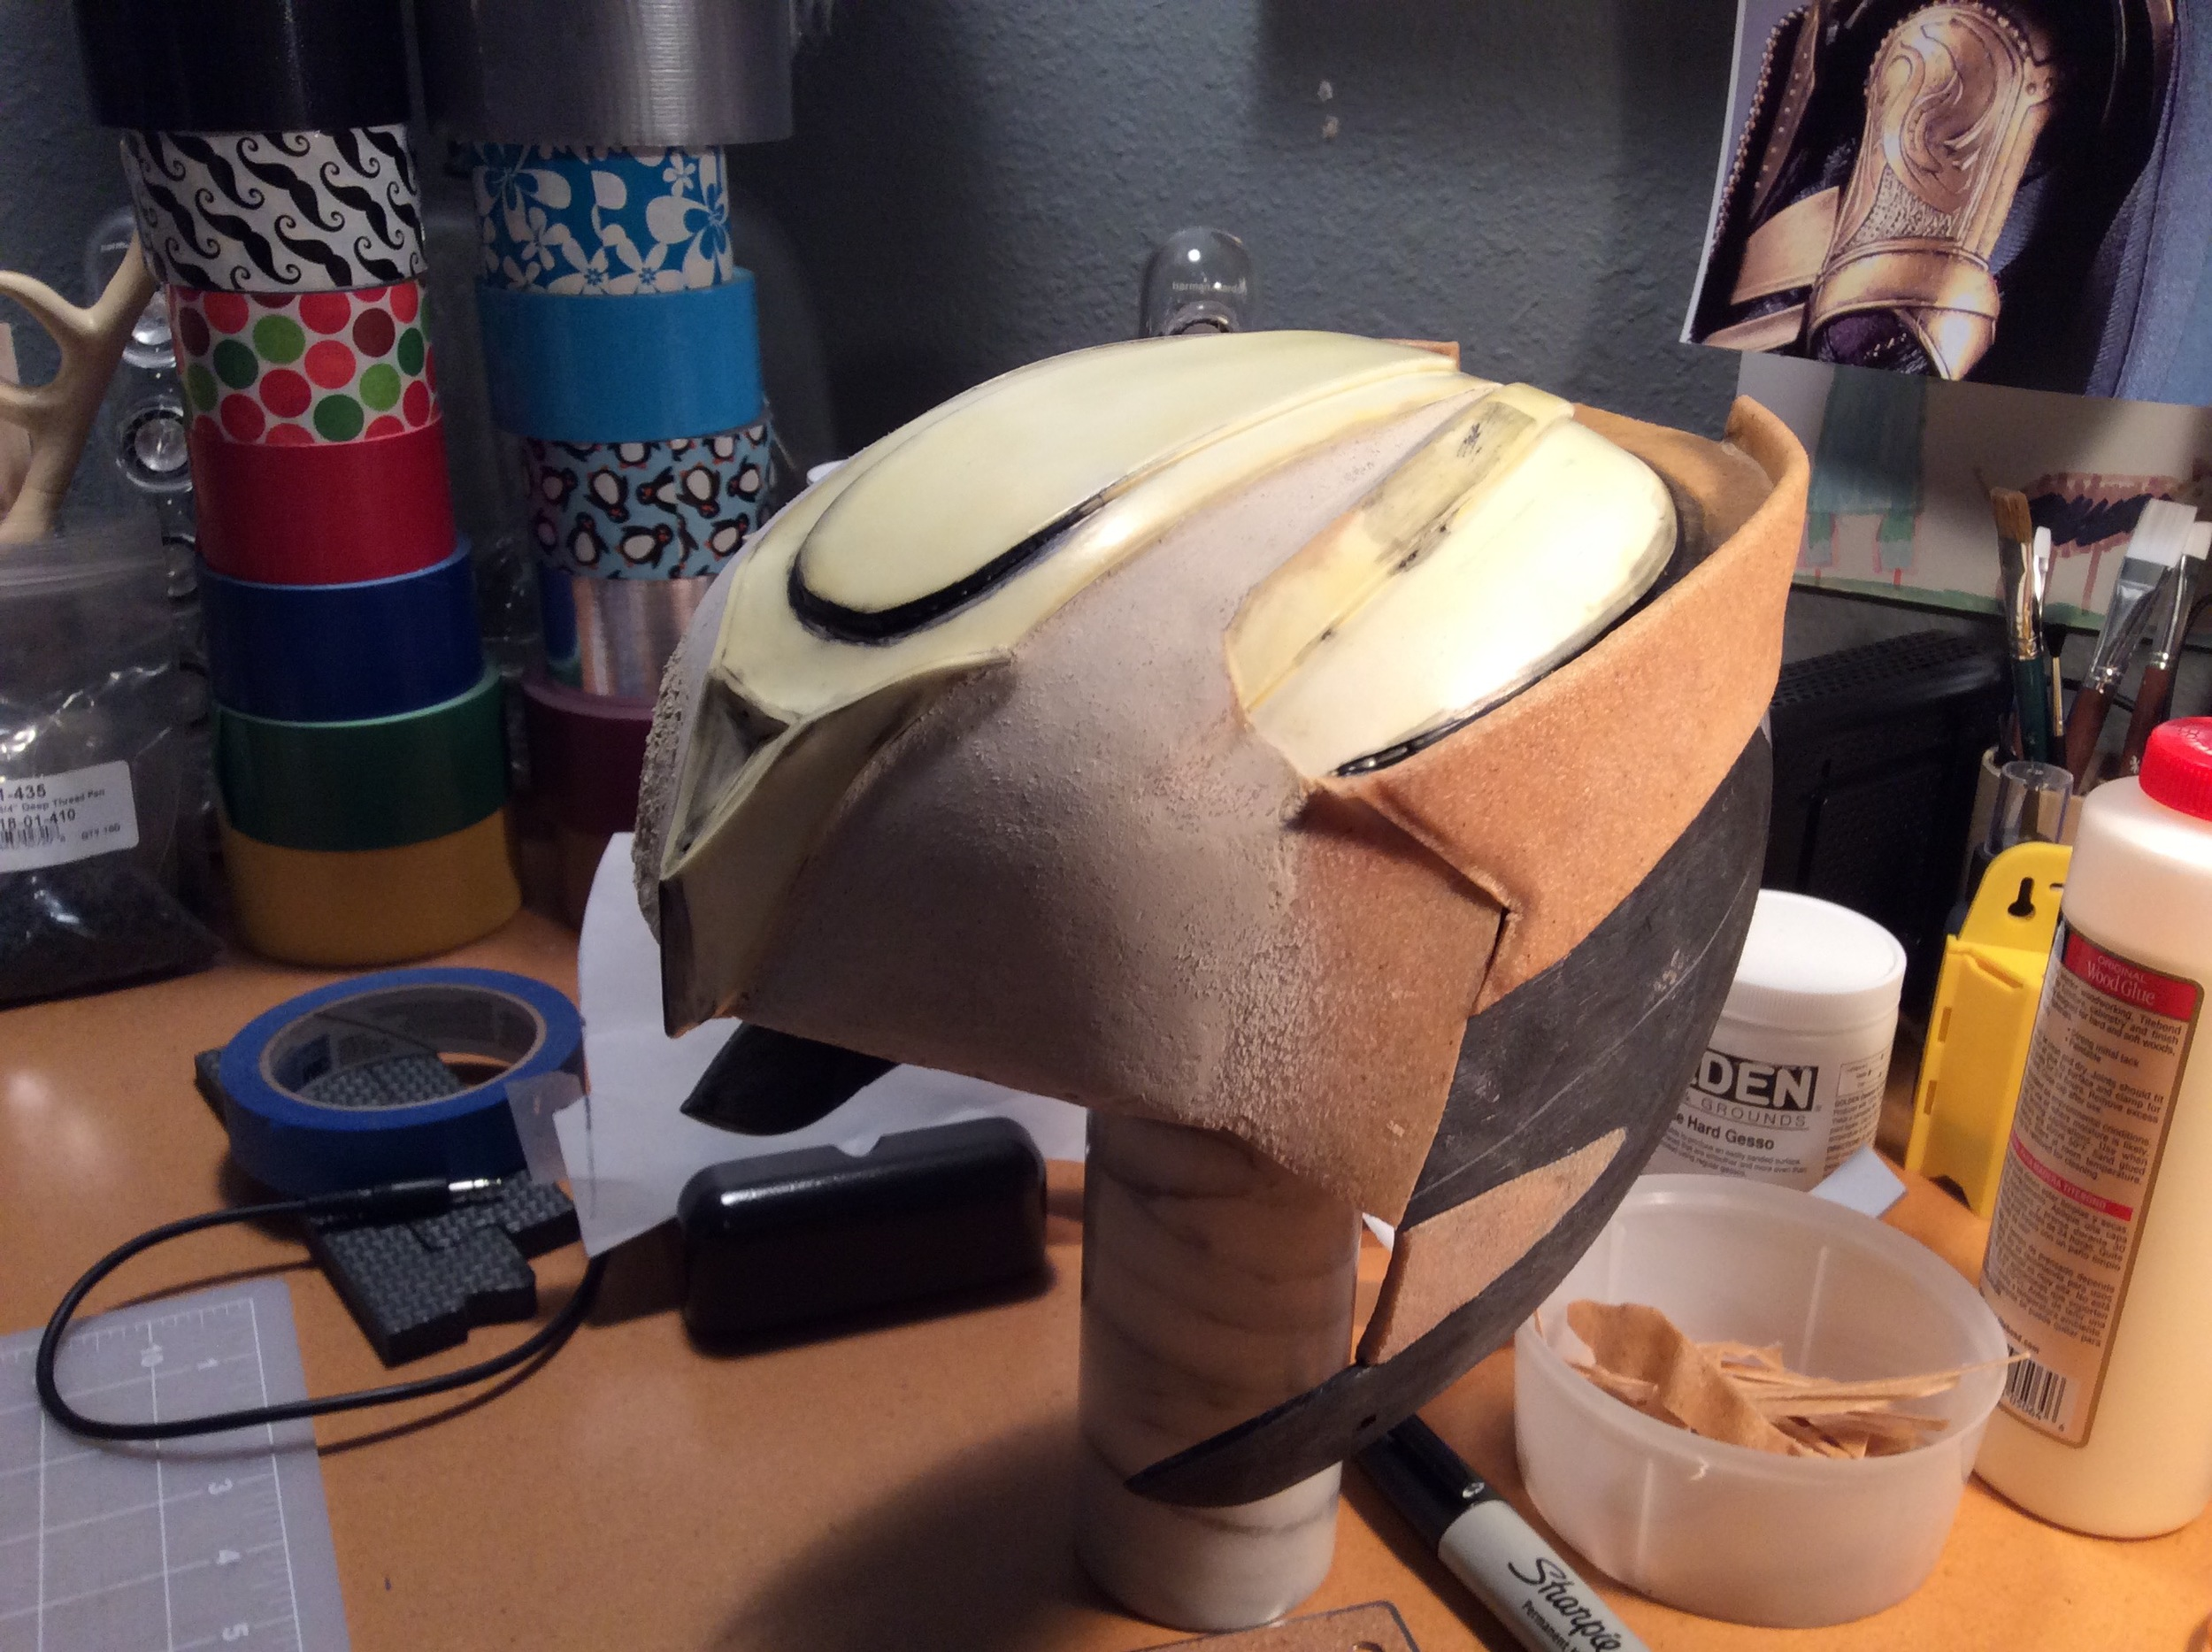 Decided not to cover the craft foam with worbla and instead coated it with wood glue to smooth out and reinforce.